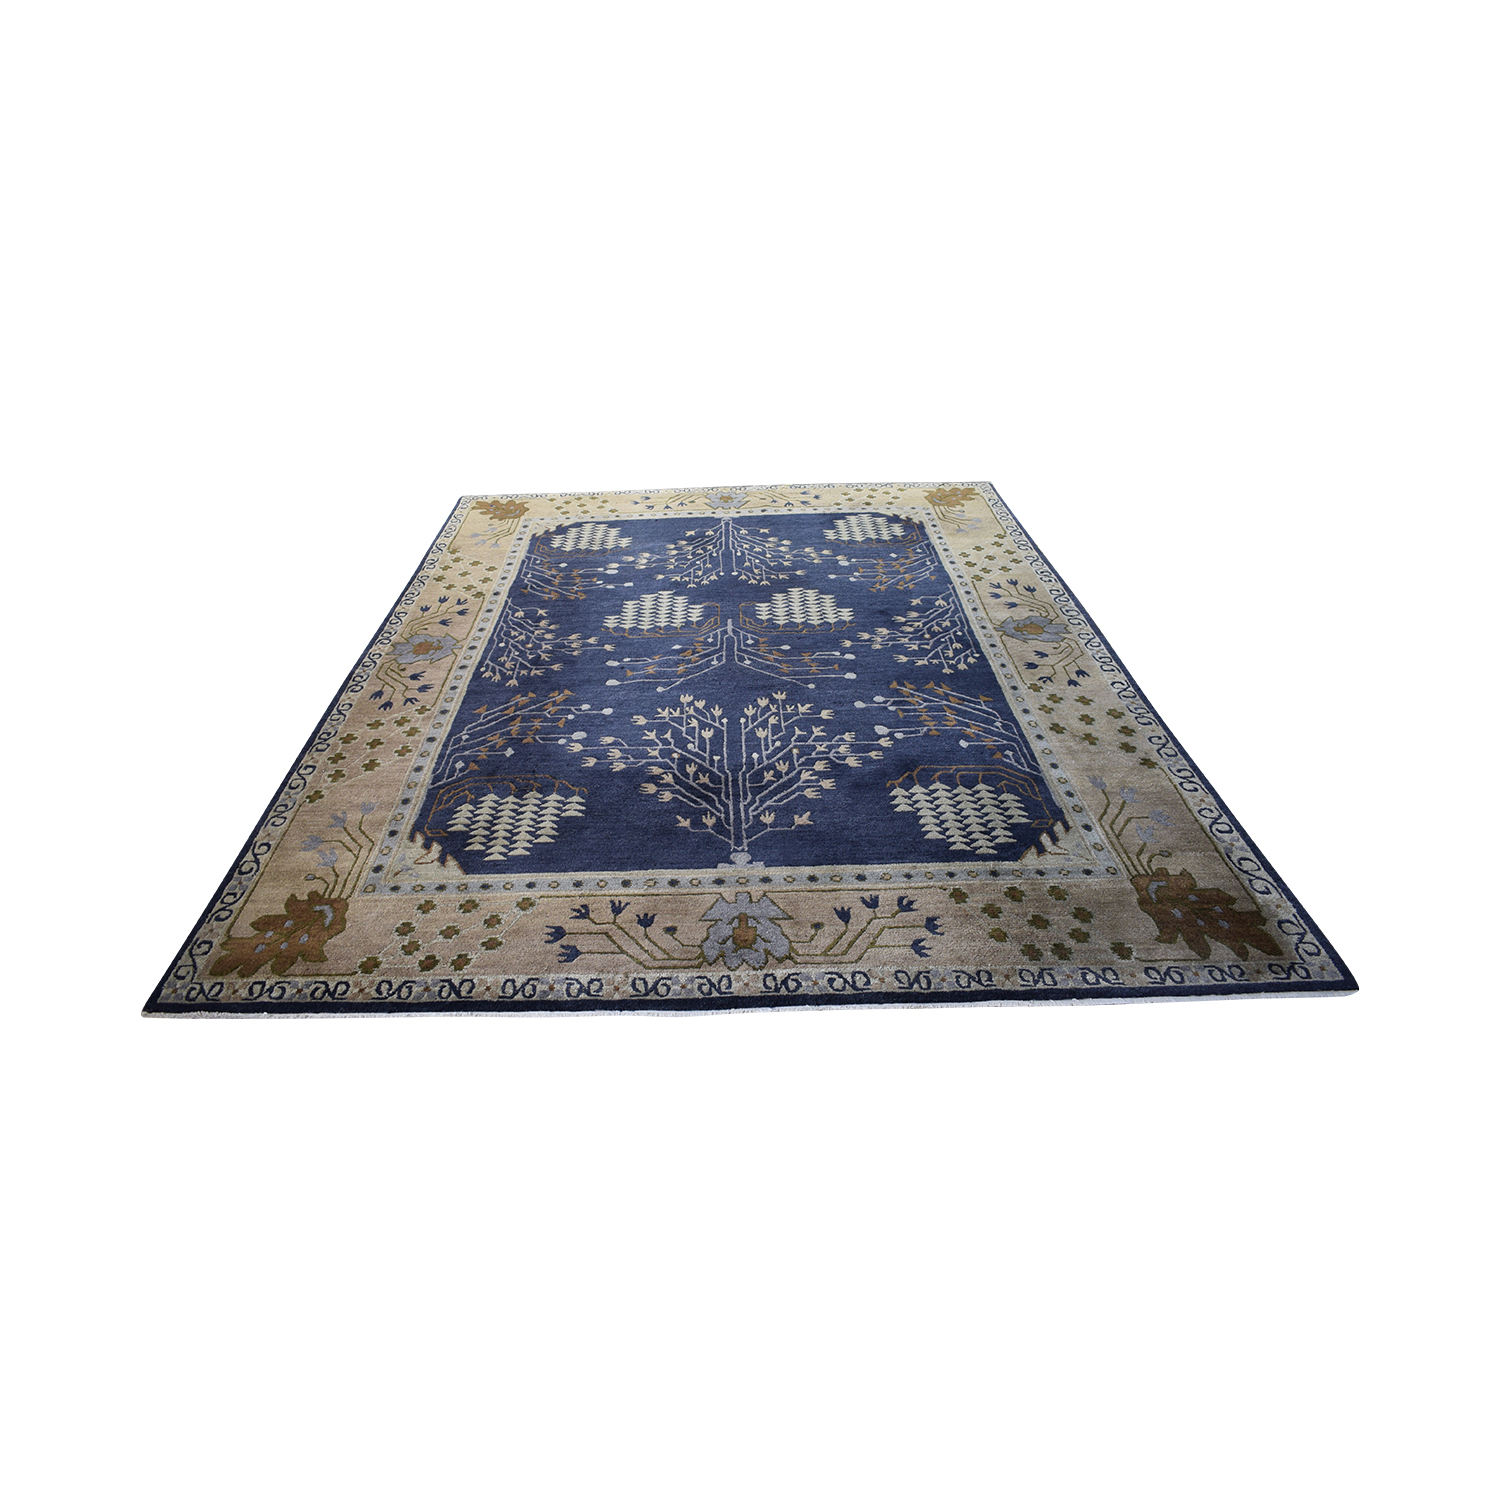 ABC Carpet & Home ABC Carpet & Home Rug Decor